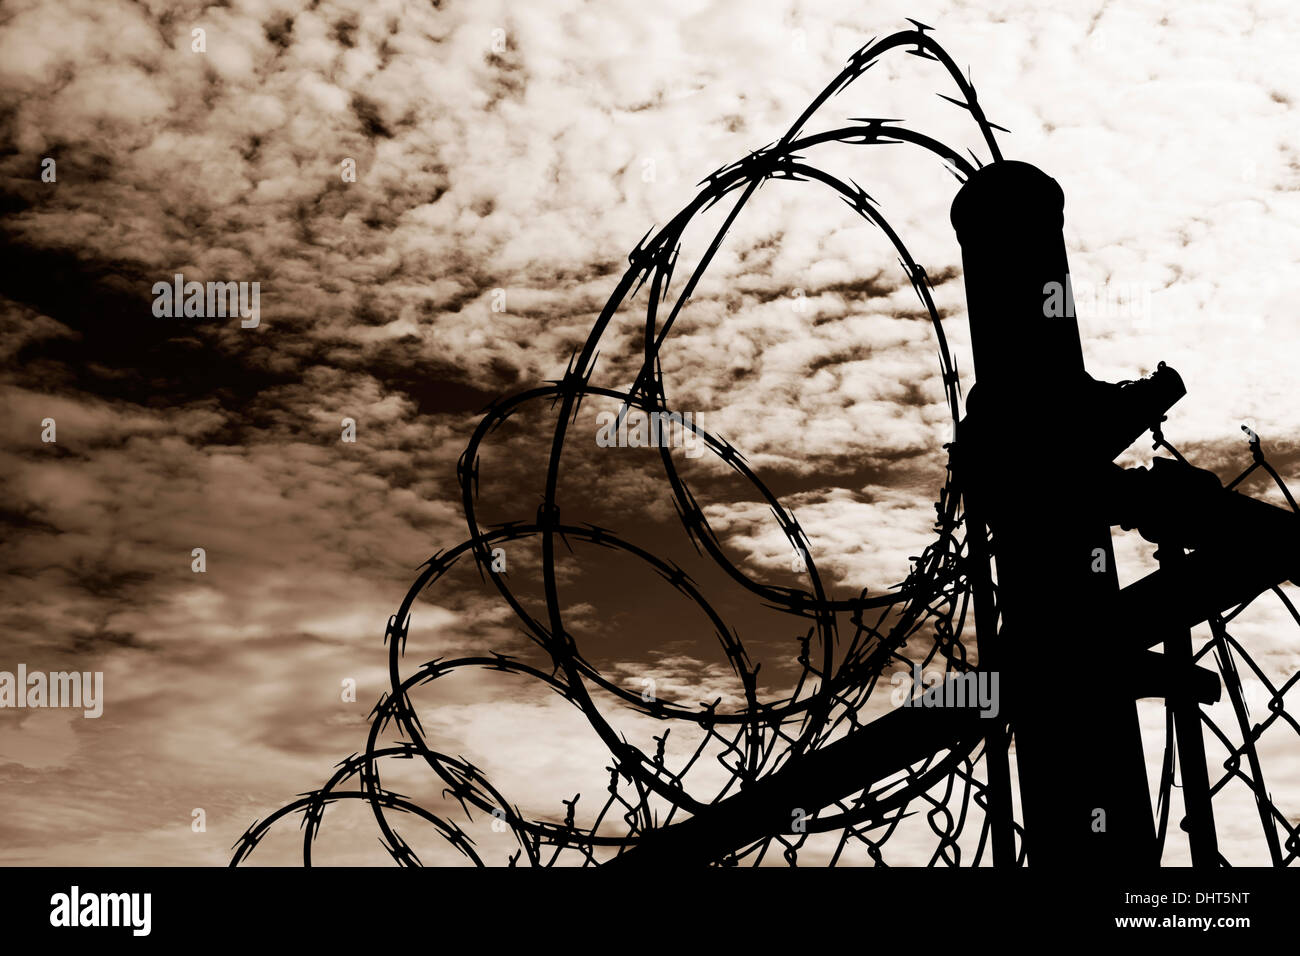 A barbed wire prison fence silhouetted  against a dark, amber moody sky. Stock Photo